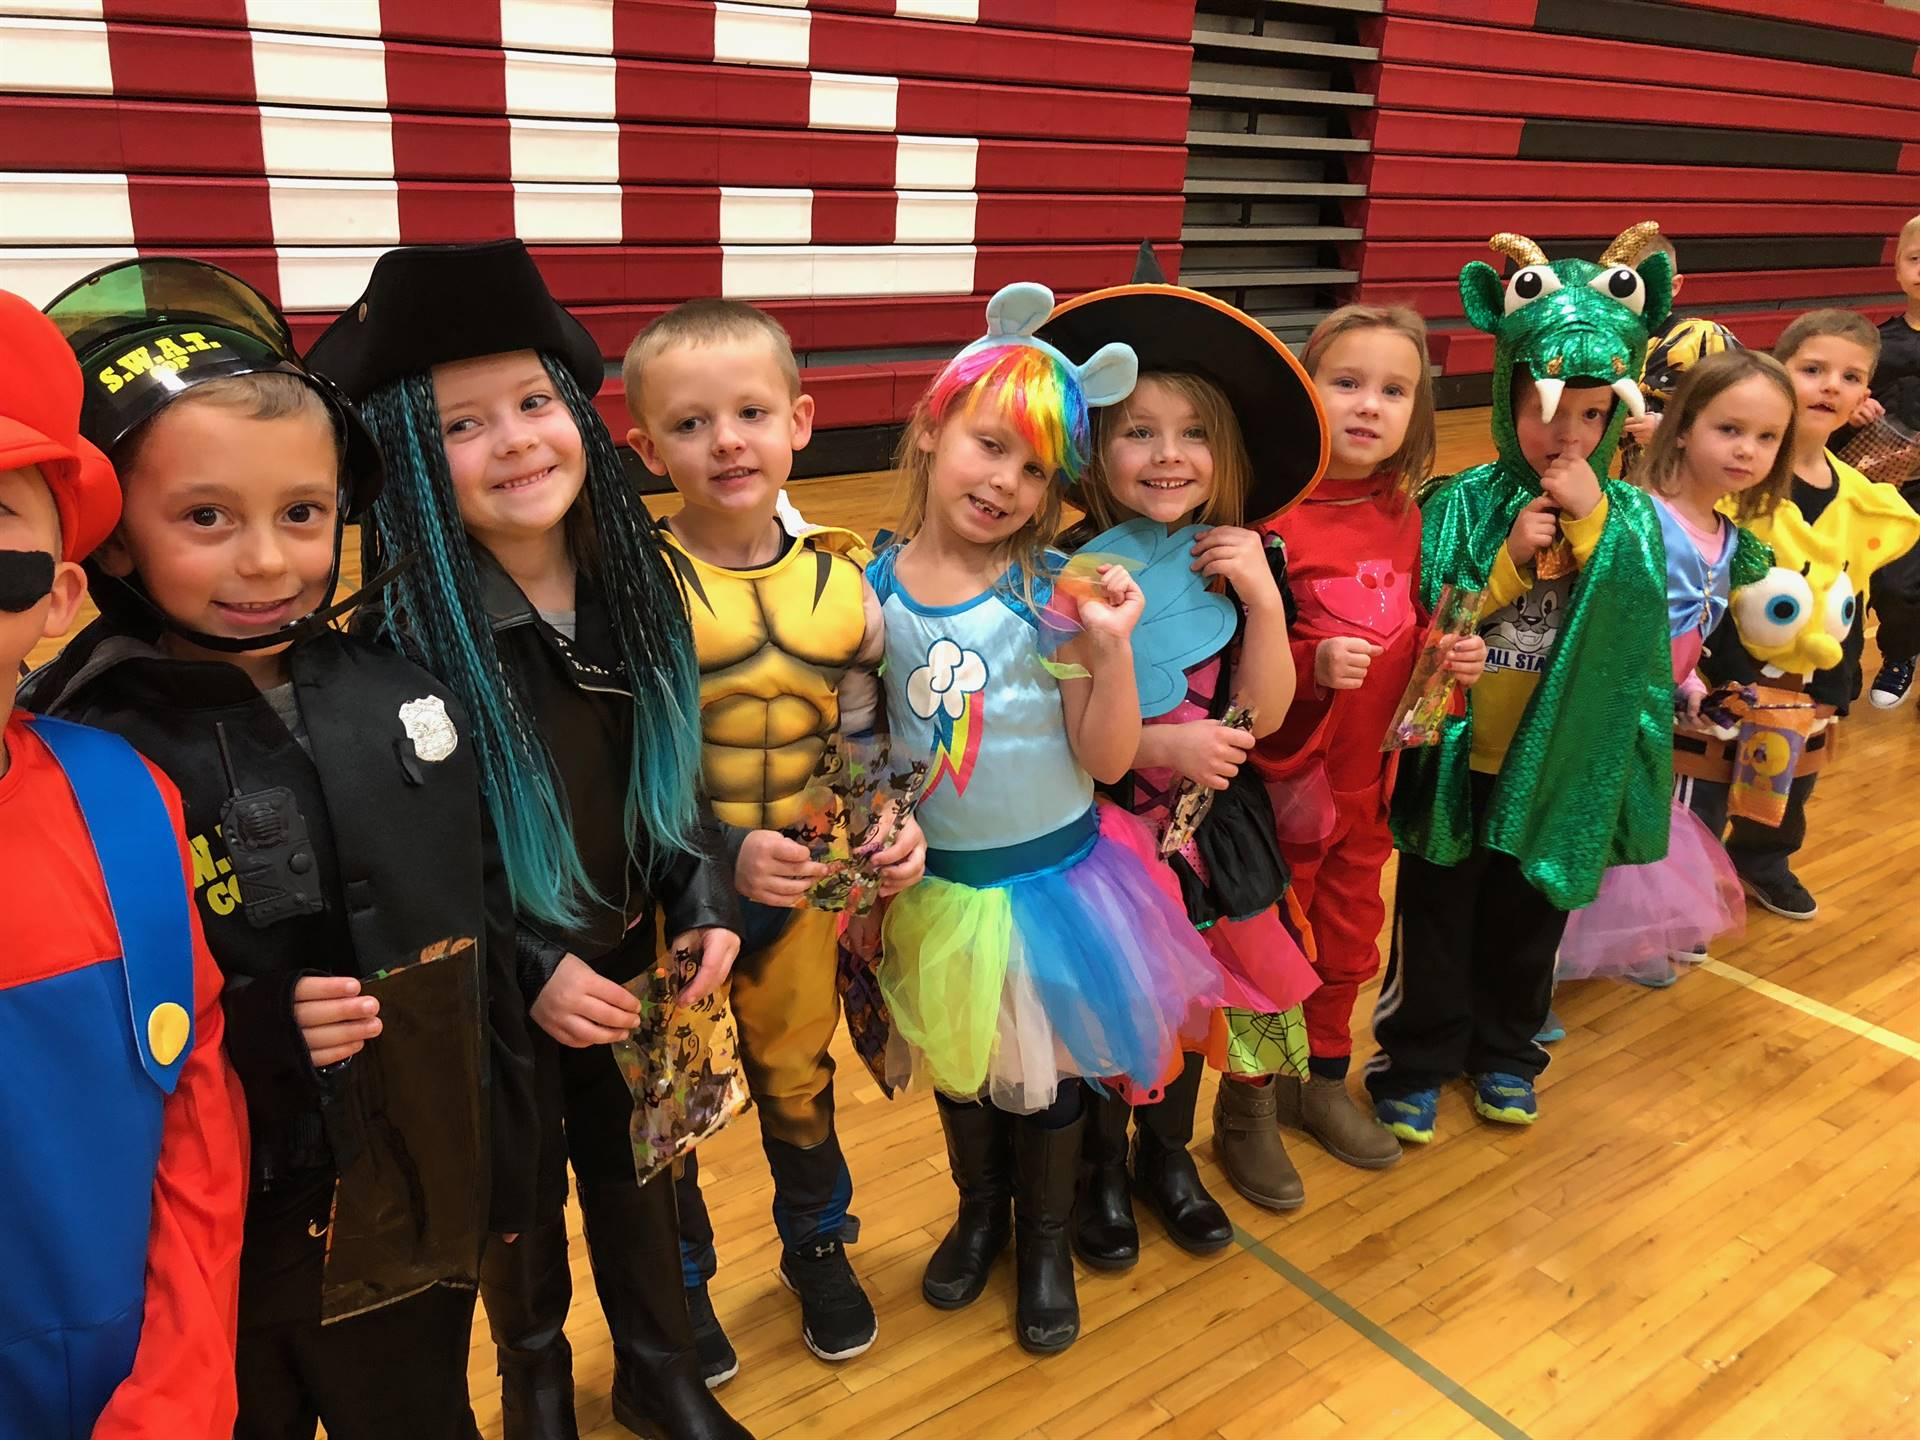 Elementary students dressed in costume